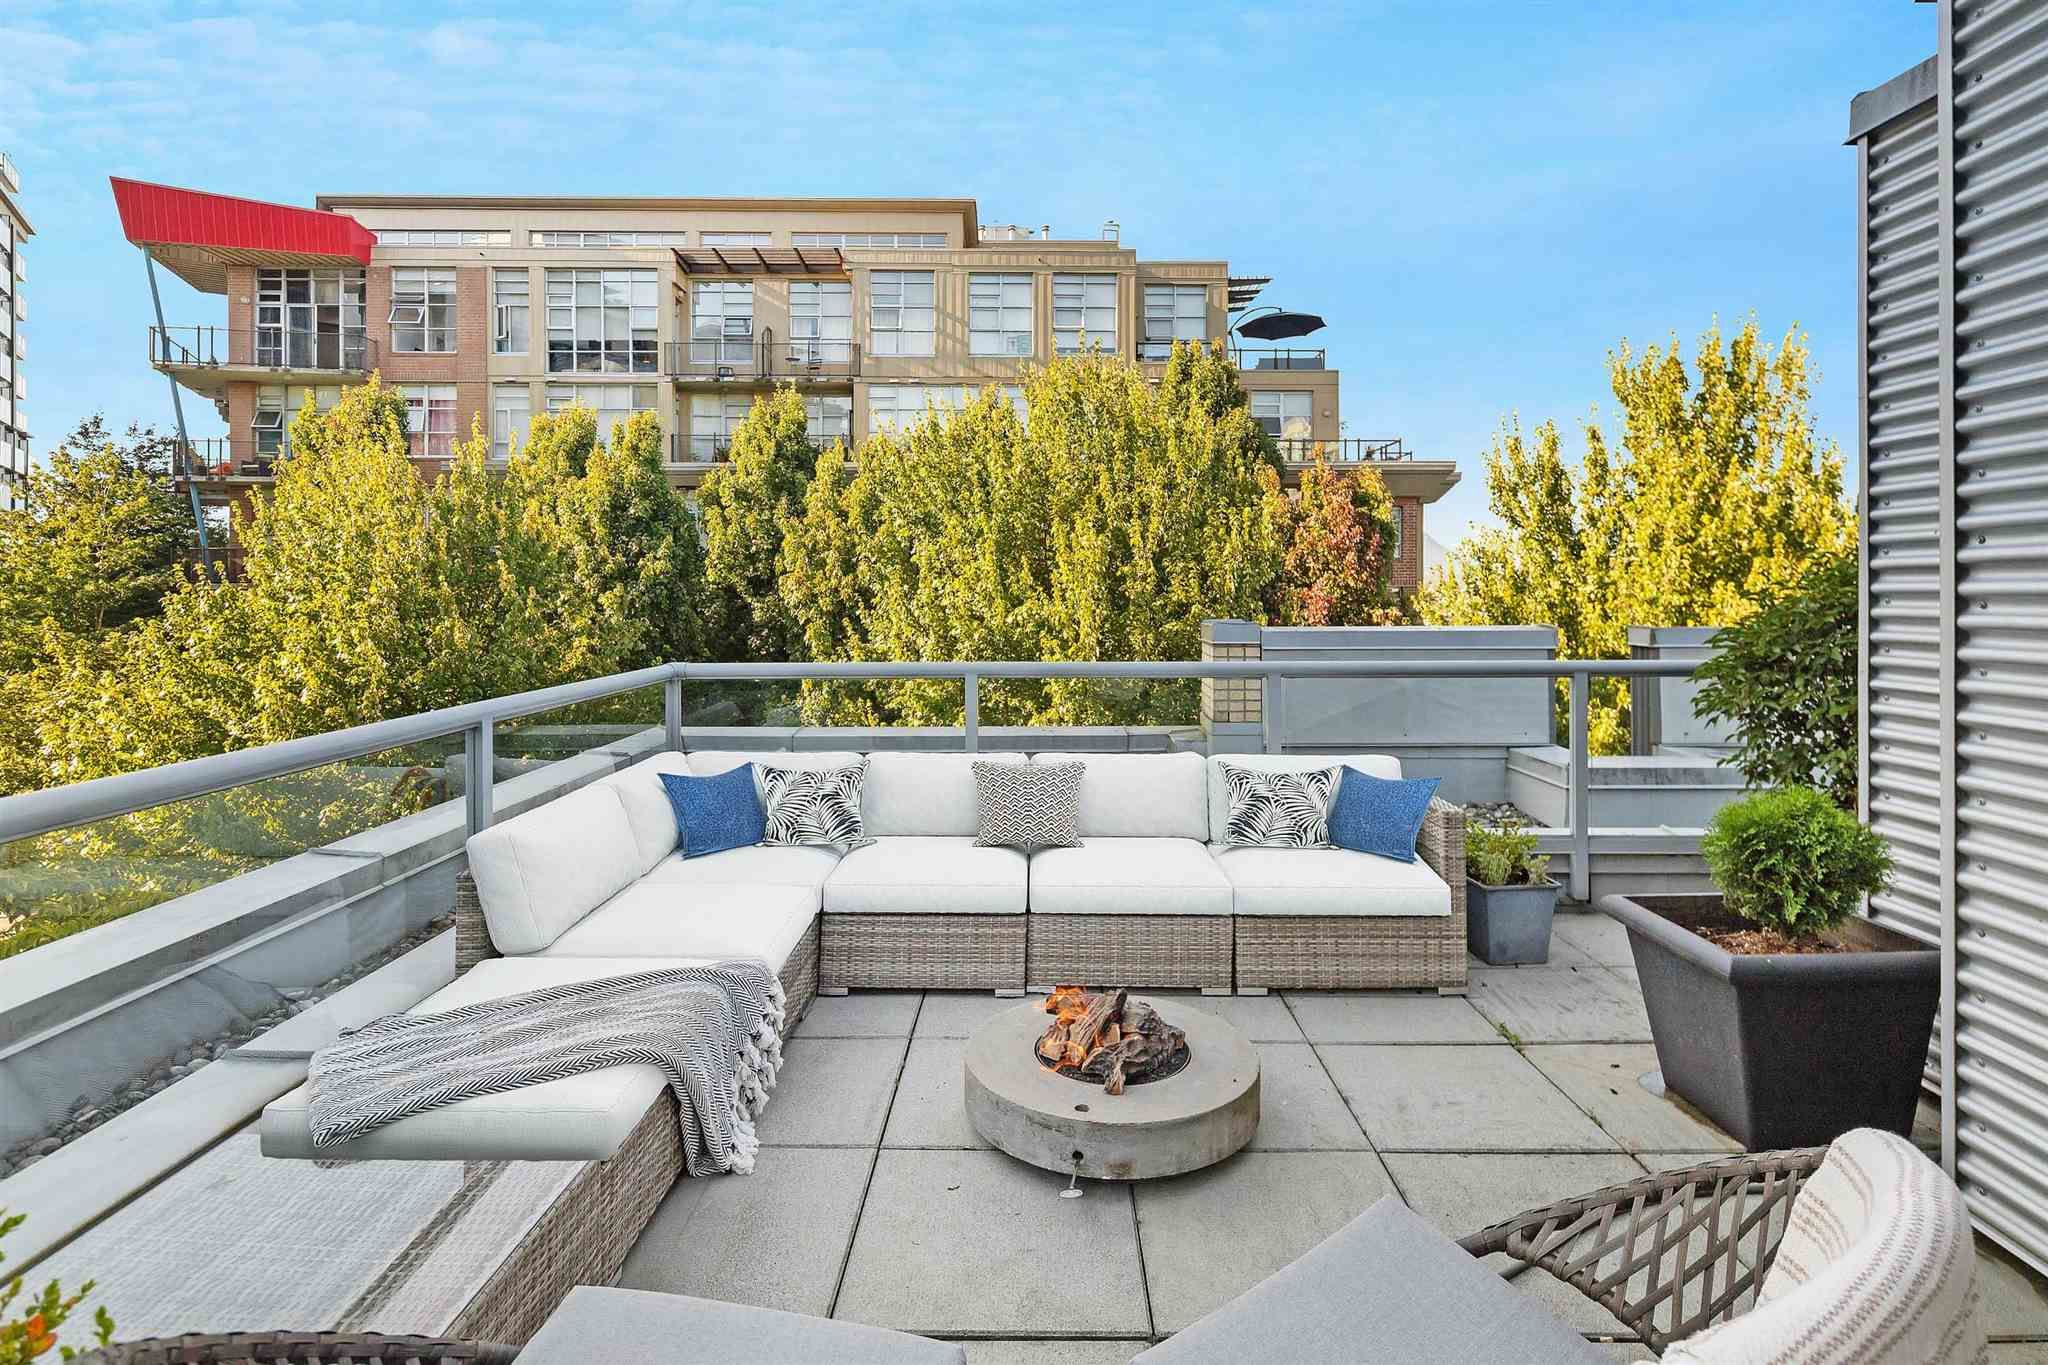 """Main Photo: 380 E 11TH Avenue in Vancouver: Mount Pleasant VE Townhouse for sale in """"UNO"""" (Vancouver East)  : MLS®# R2595479"""